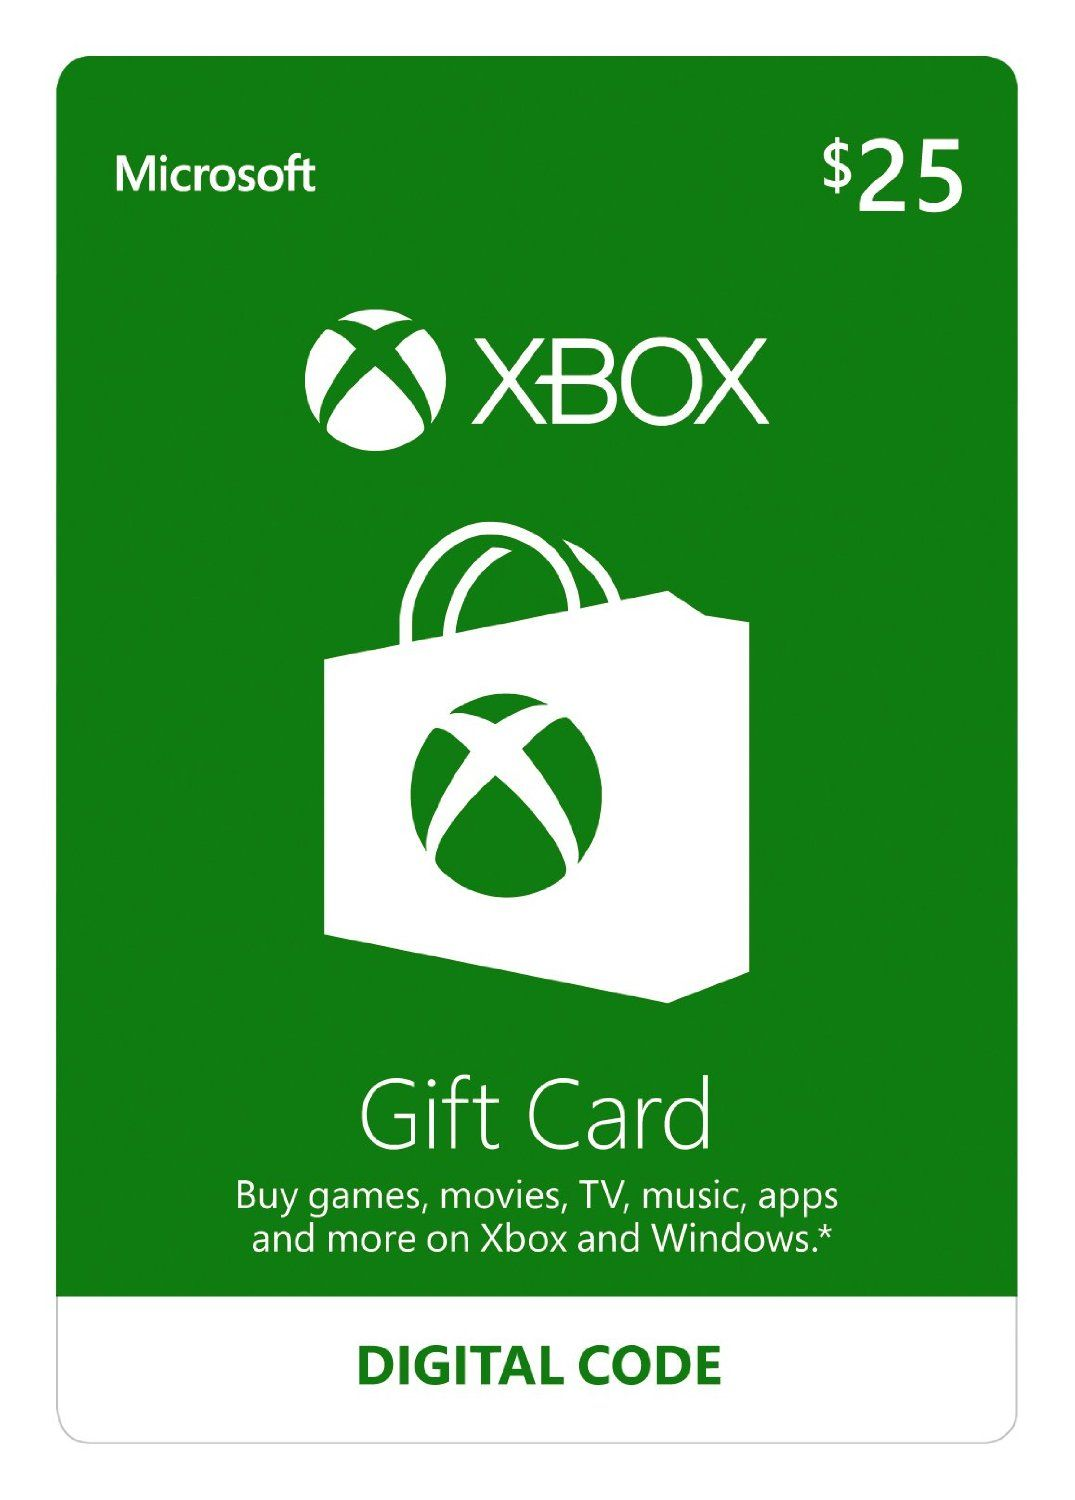 Xbox 25 gift card game code video